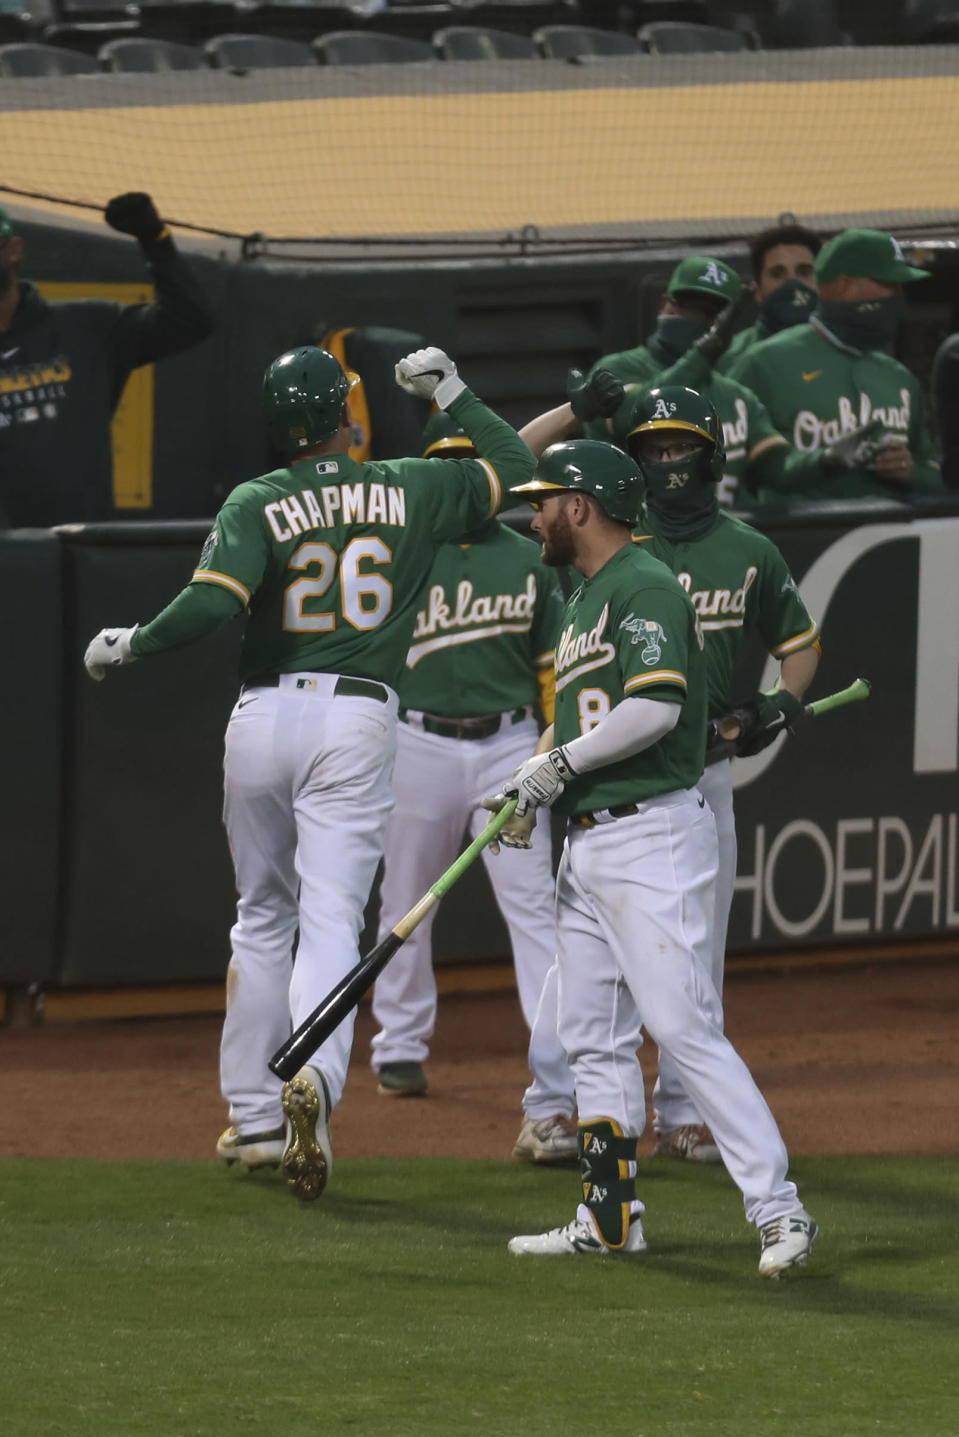 Oakland Athletics Matt Chapman is congratulated after hitting a solo home run against the Texas Rangers during the seventh inning of a baseball game in Oakland, Calif., Tuesday, Aug. 4, 2020. (AP Photo/Jed Jacobsohn)